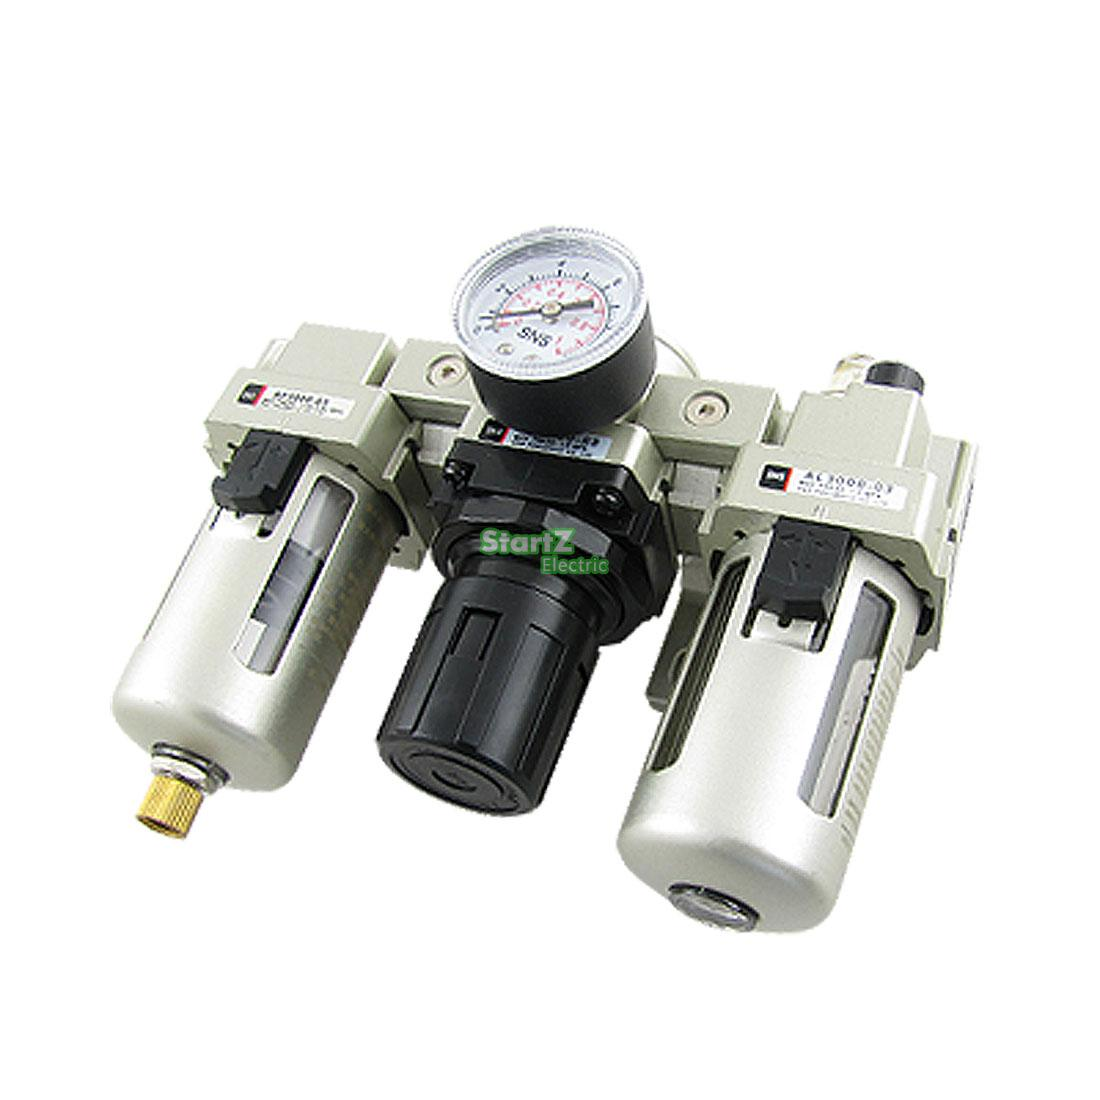 AC4000-06 G3/4'' Standard Type Air Source Treatment Unit Pneumatic Lubricator+Filter+Regulator free shipping smc filter regulator air treatment model ac4000 06 g3 4 ports with gauge 5pcs a lot